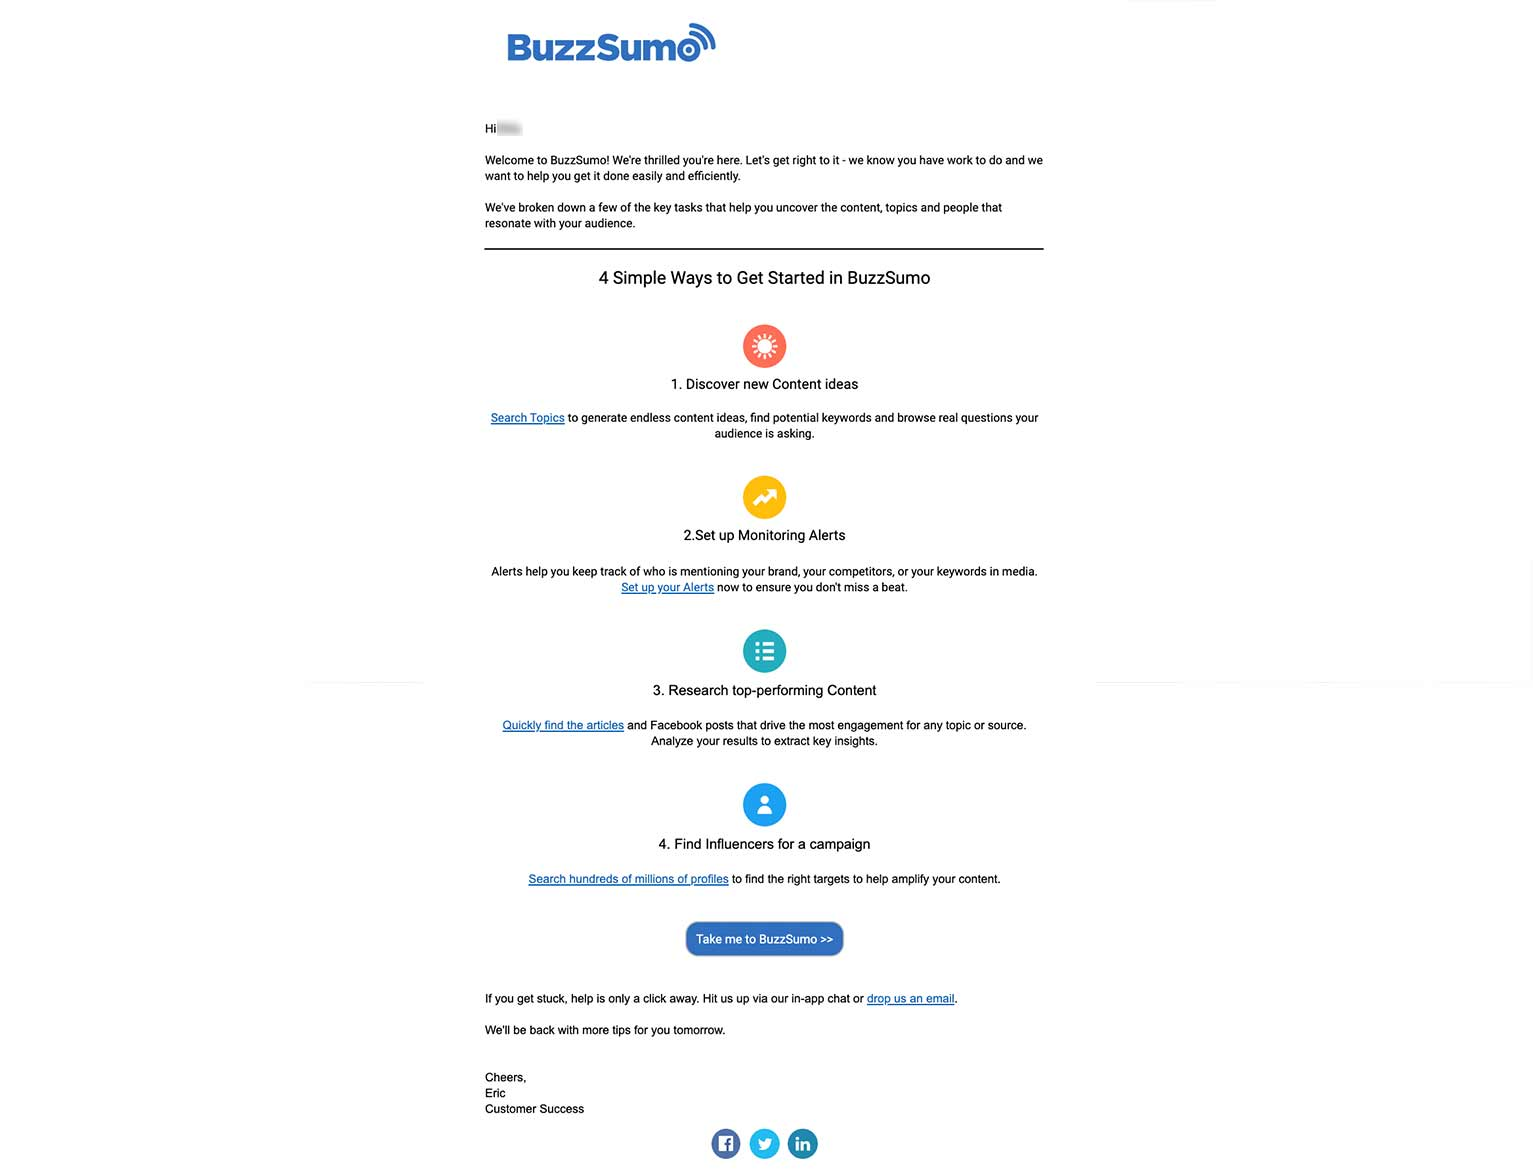 BuzzSumo onboarding email detailing 4 ways to get started, including discovering content ideas, monitoring alerts, conducting research and finding influencers.